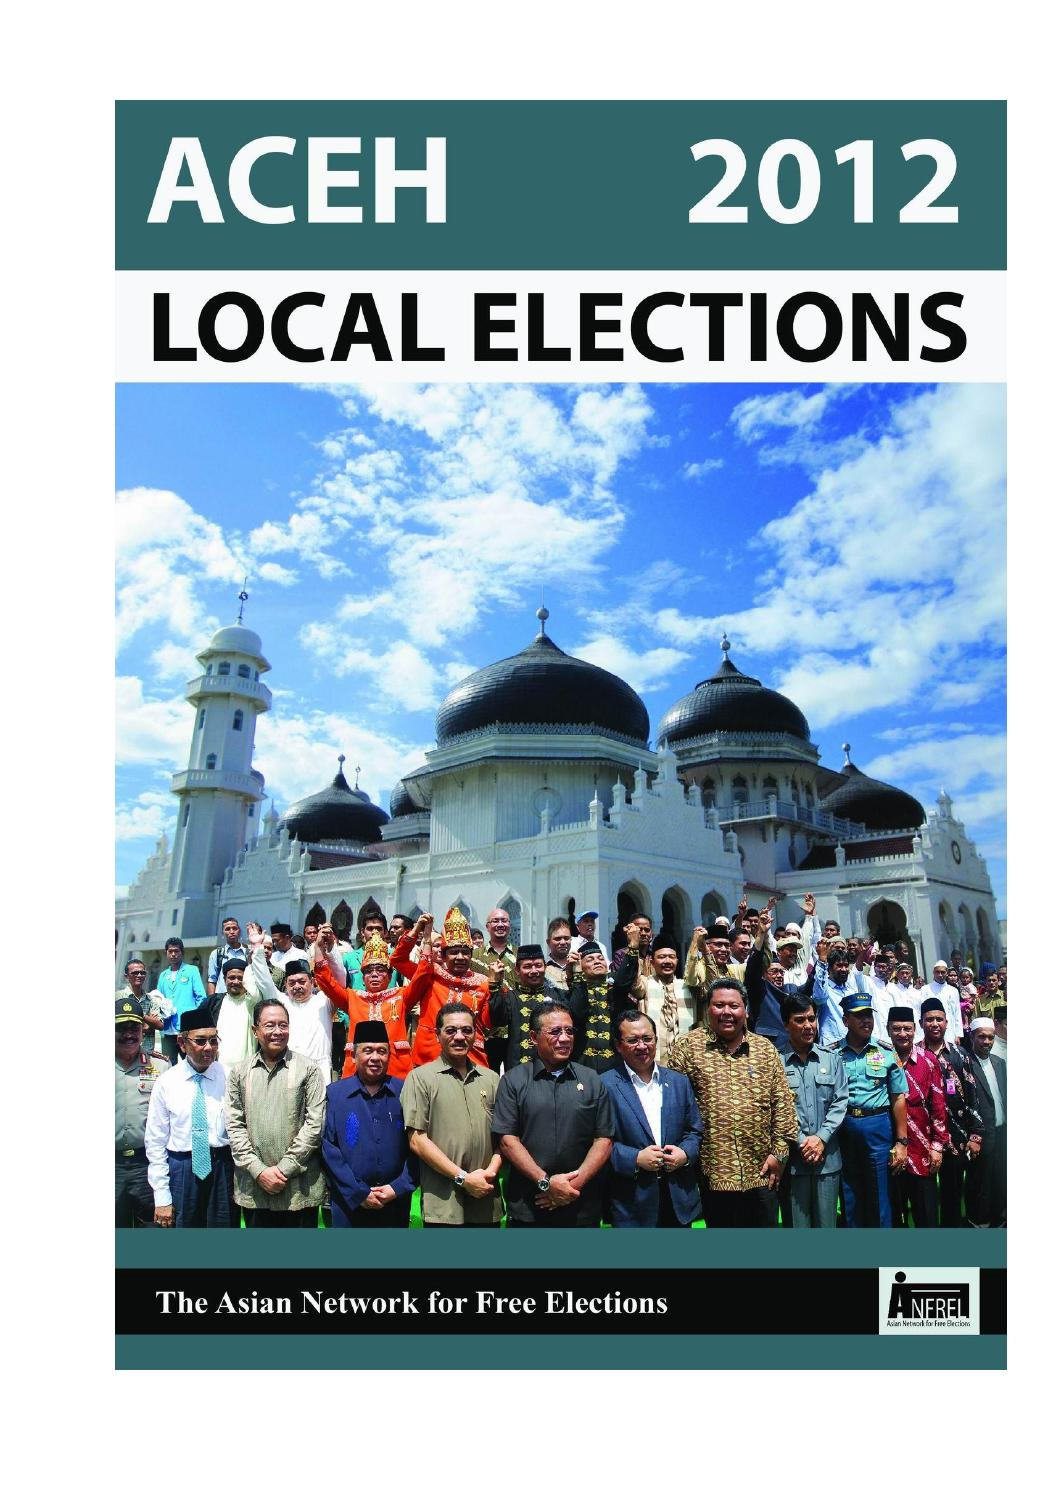 Aceh mission findings report by Anfrel - issuu